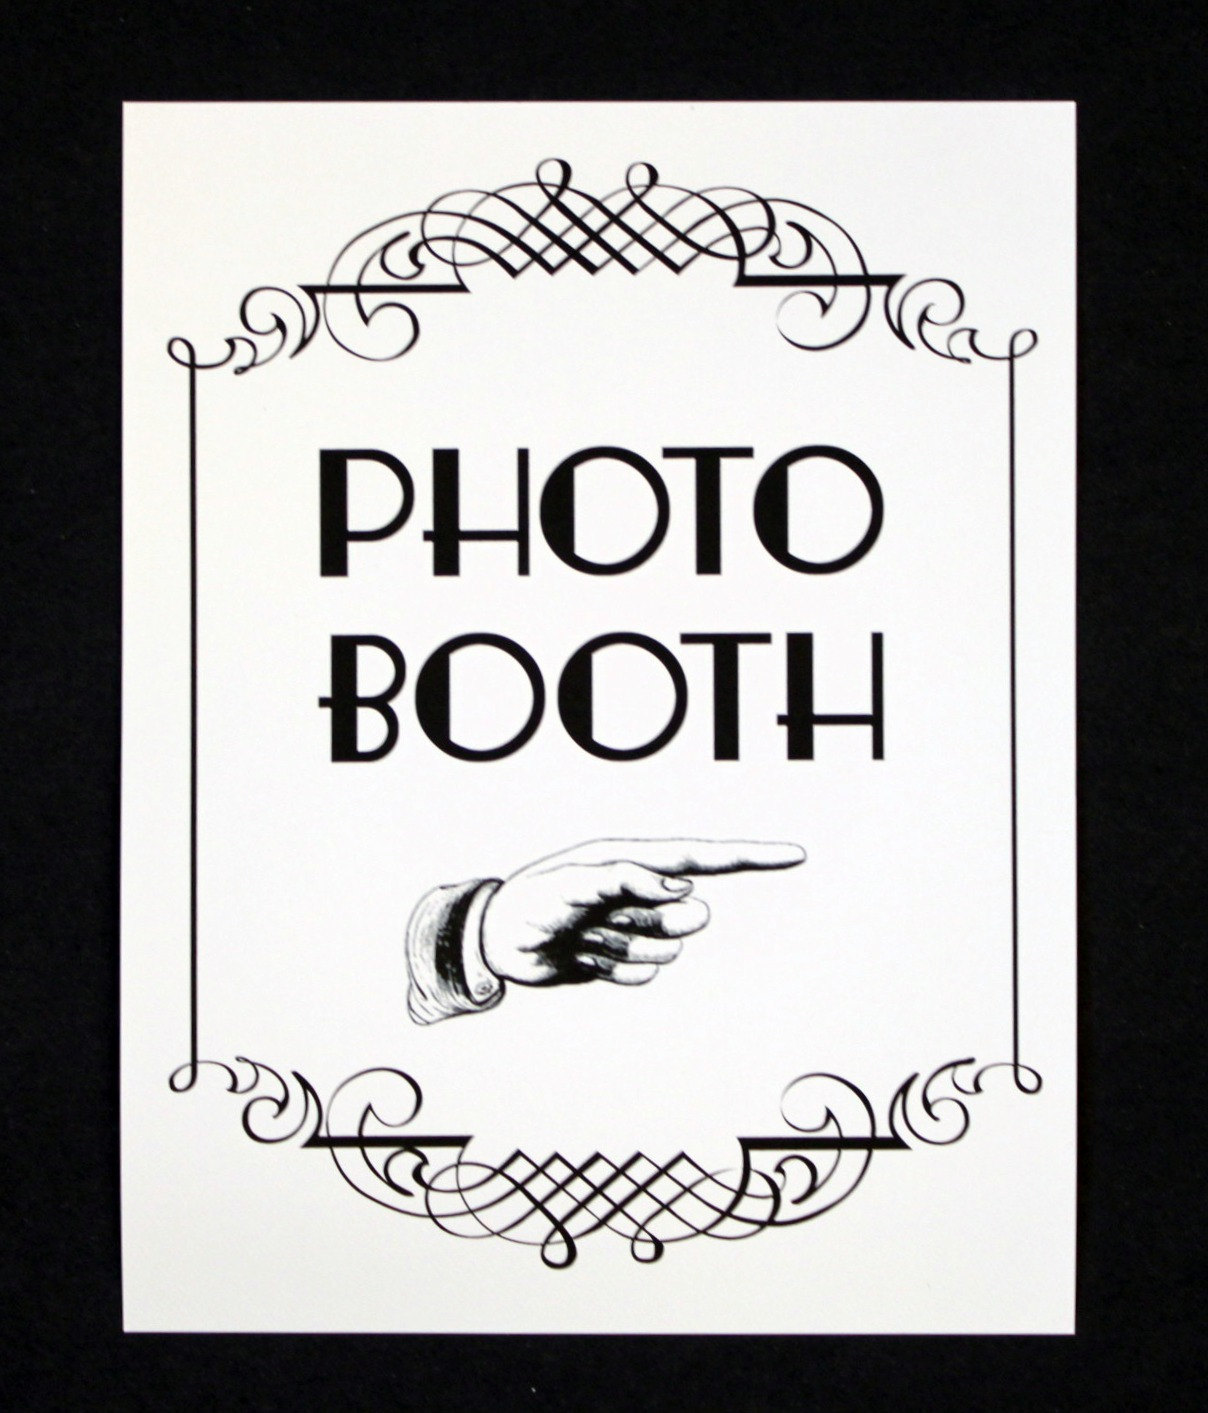 Photobooth